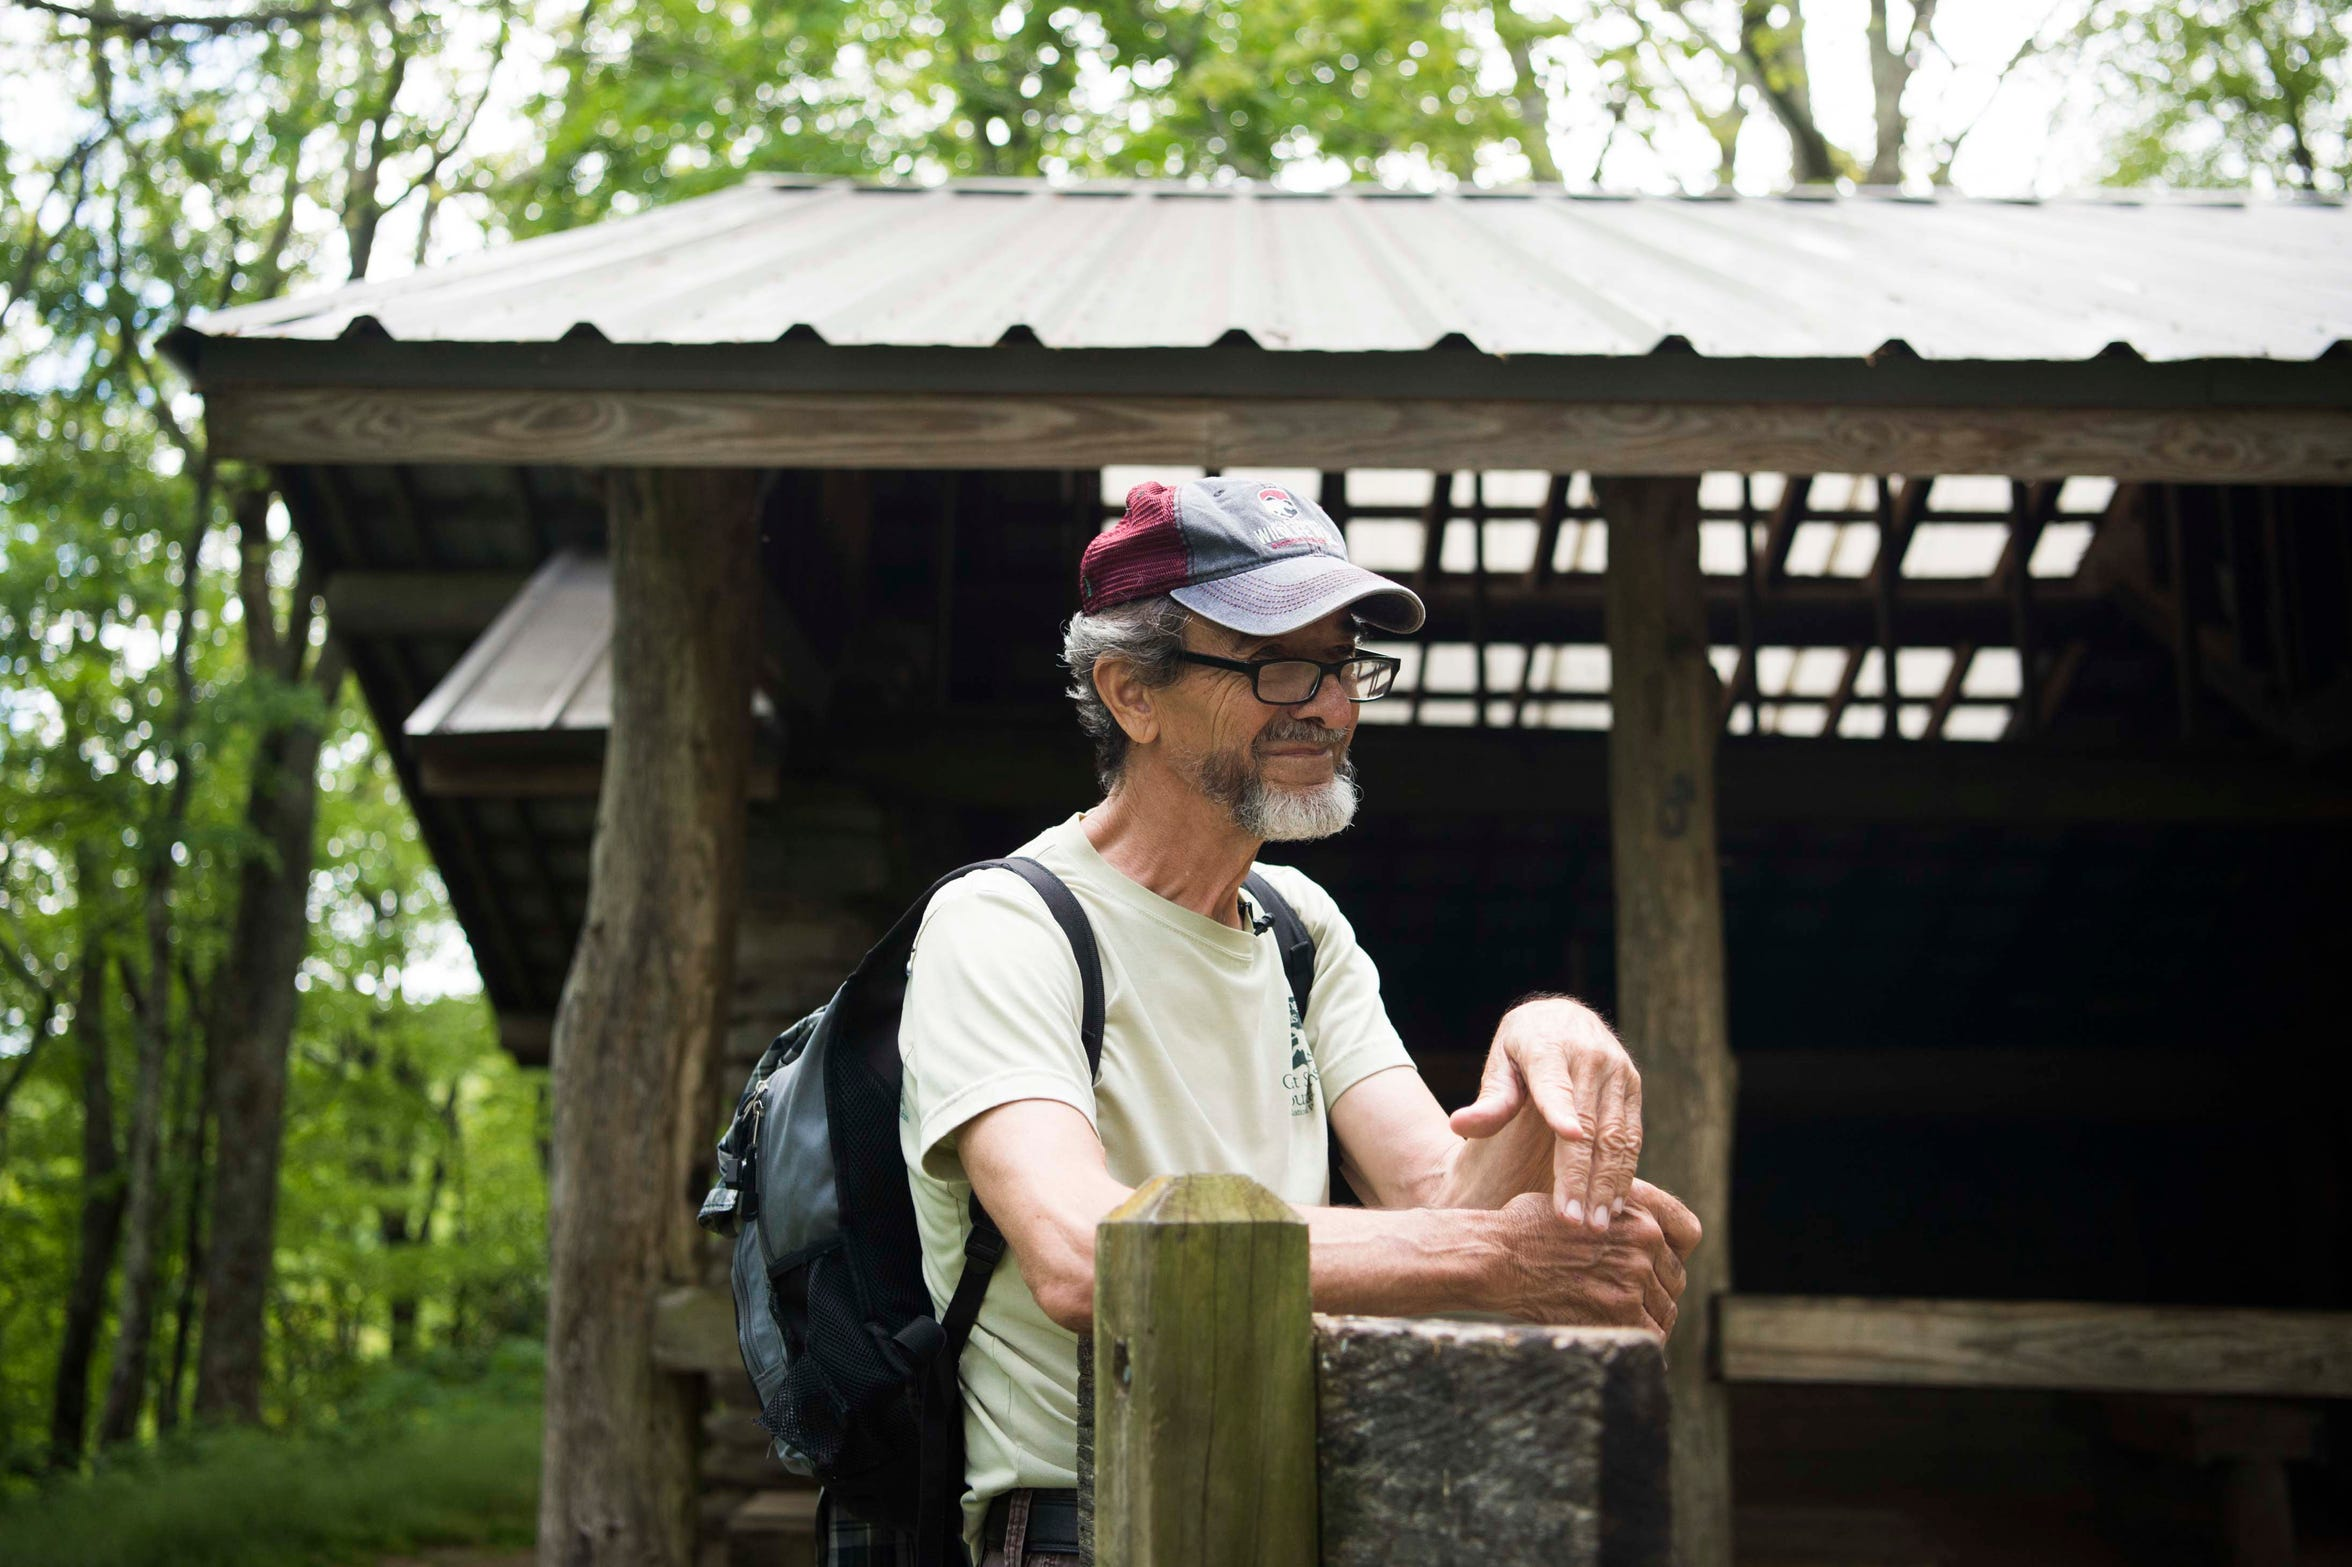 Dwight McCarter, a tracker and retired parks ranger, stands in front of the shelter where Dennis Martin's family stayed, in Spence Field, as the 6-year-old boy vanished from sight and was never found on June 14, 1969, in the Great Smoky Mountains National Park. The search for the Knoxville boy is still the most massive in the park's history.